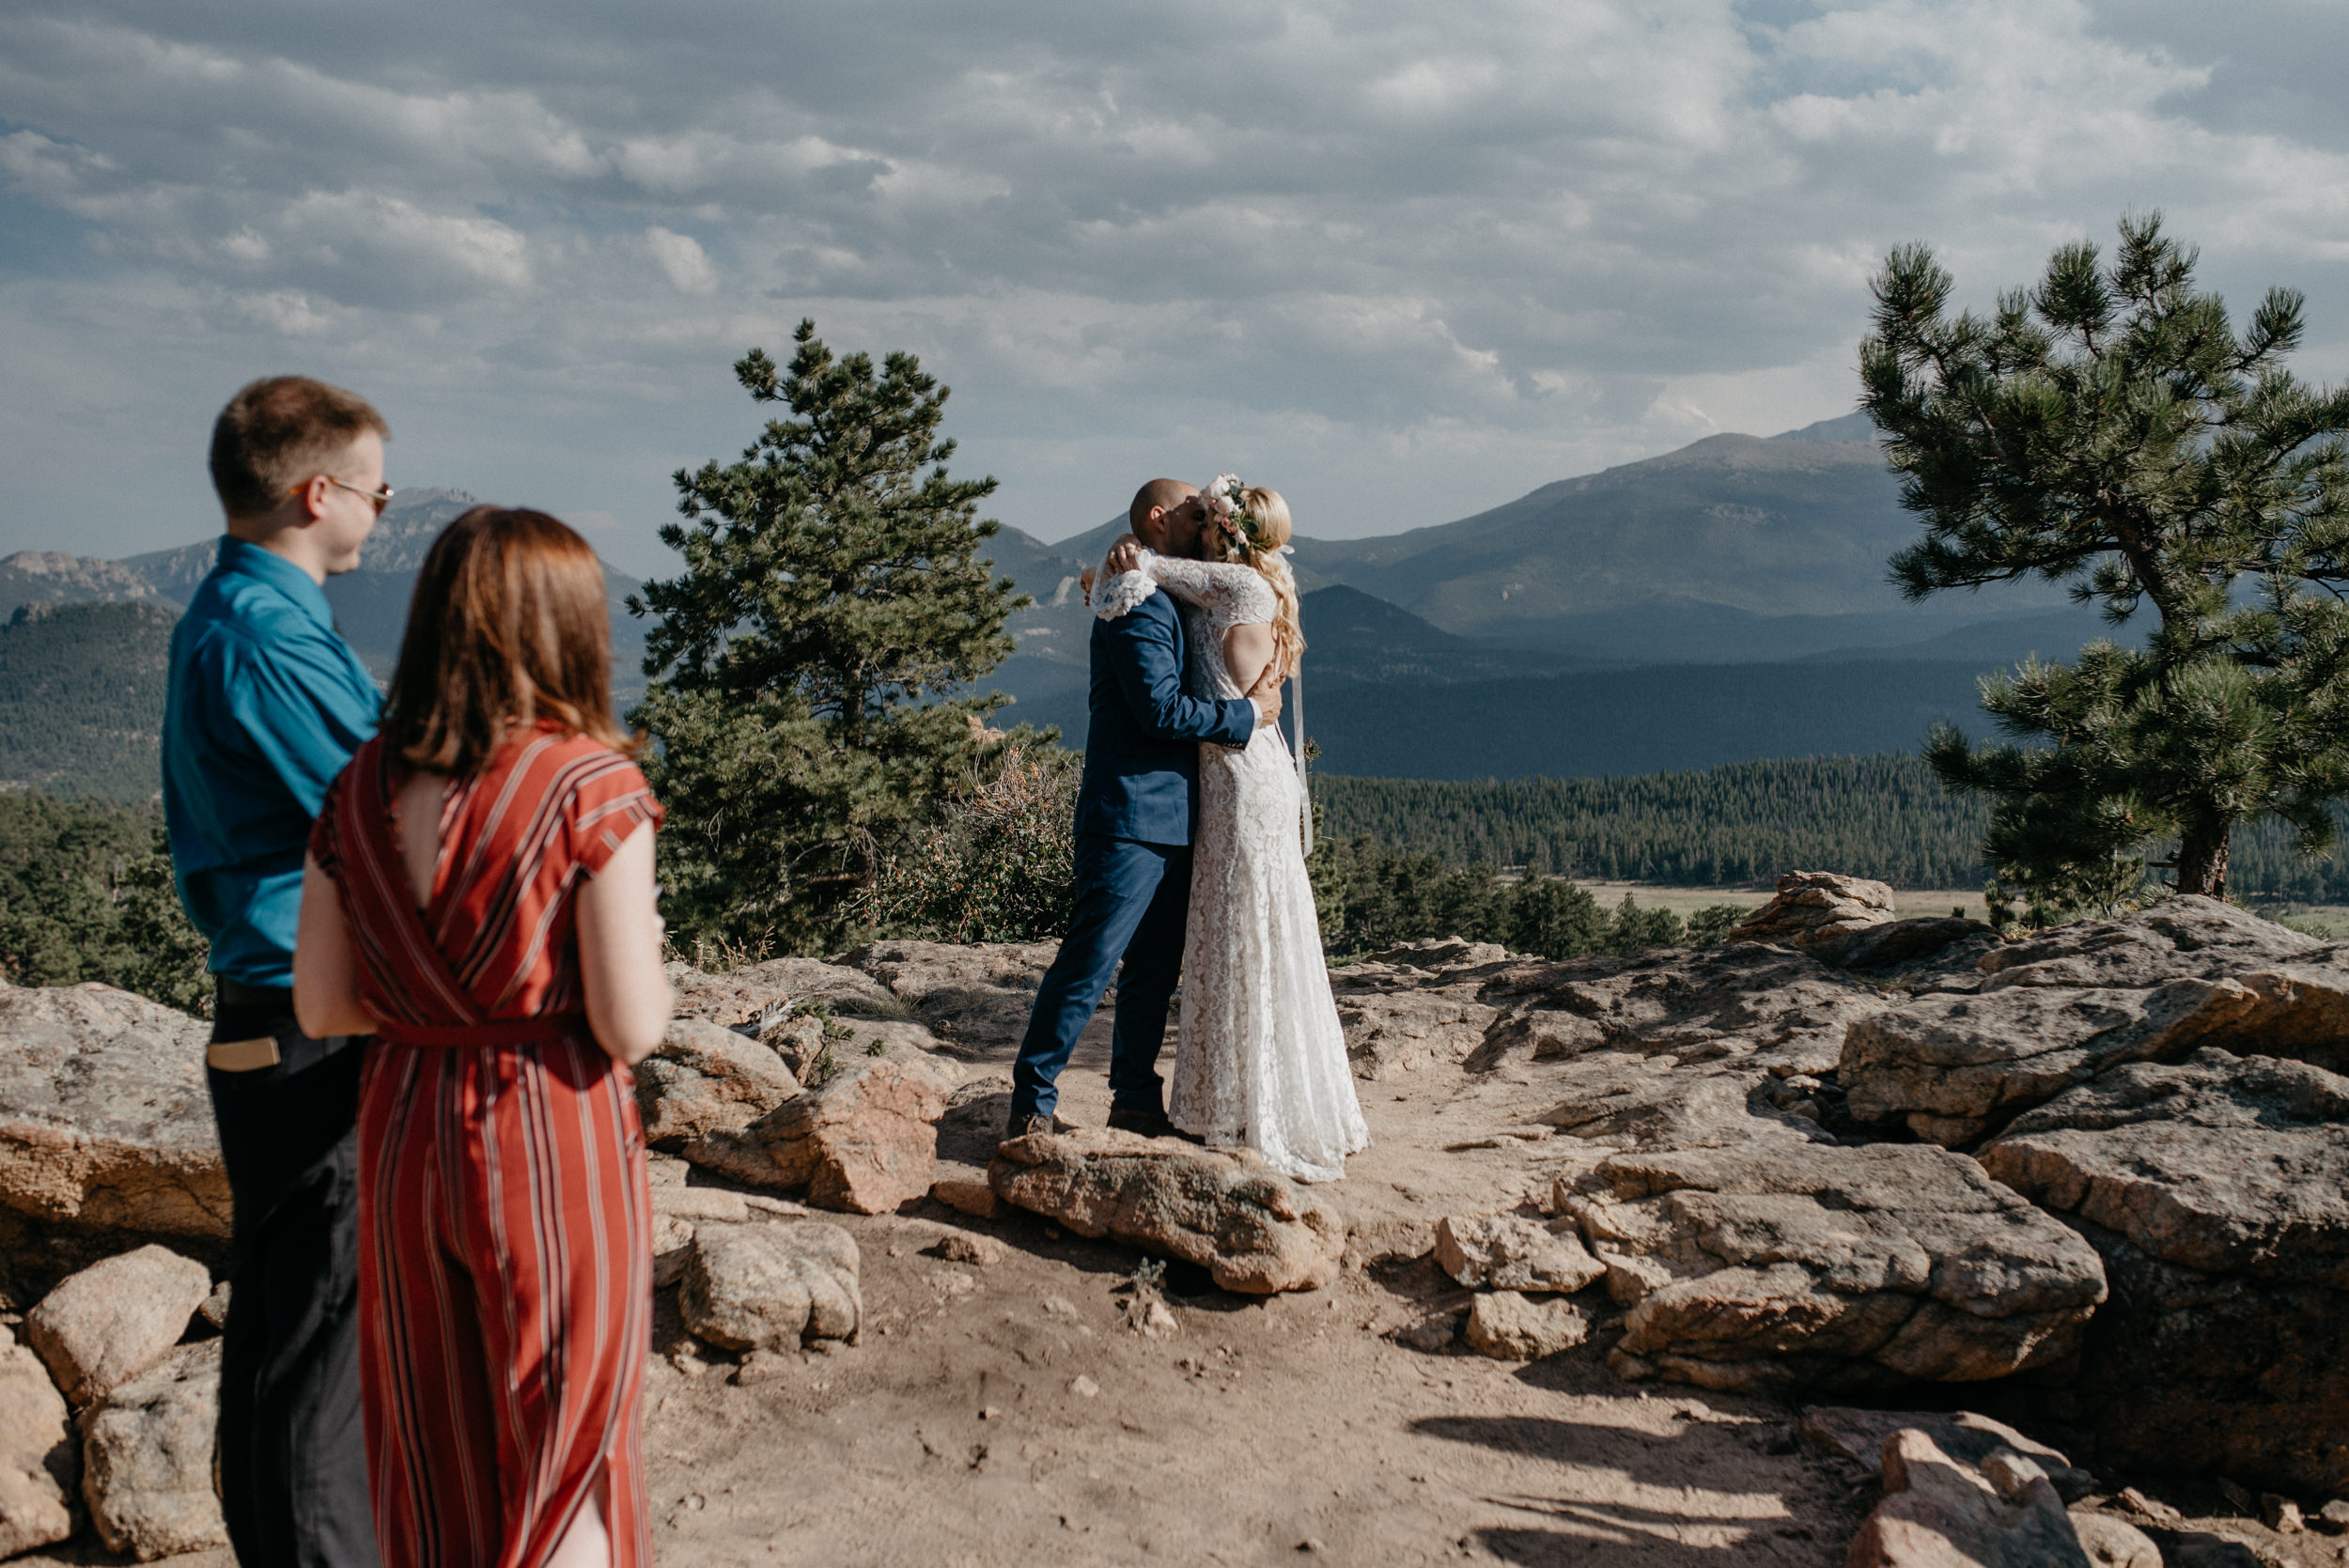 First kiss at intimate ceremony in Rocky Mountain National Park. Colorado elopement at 3M curve